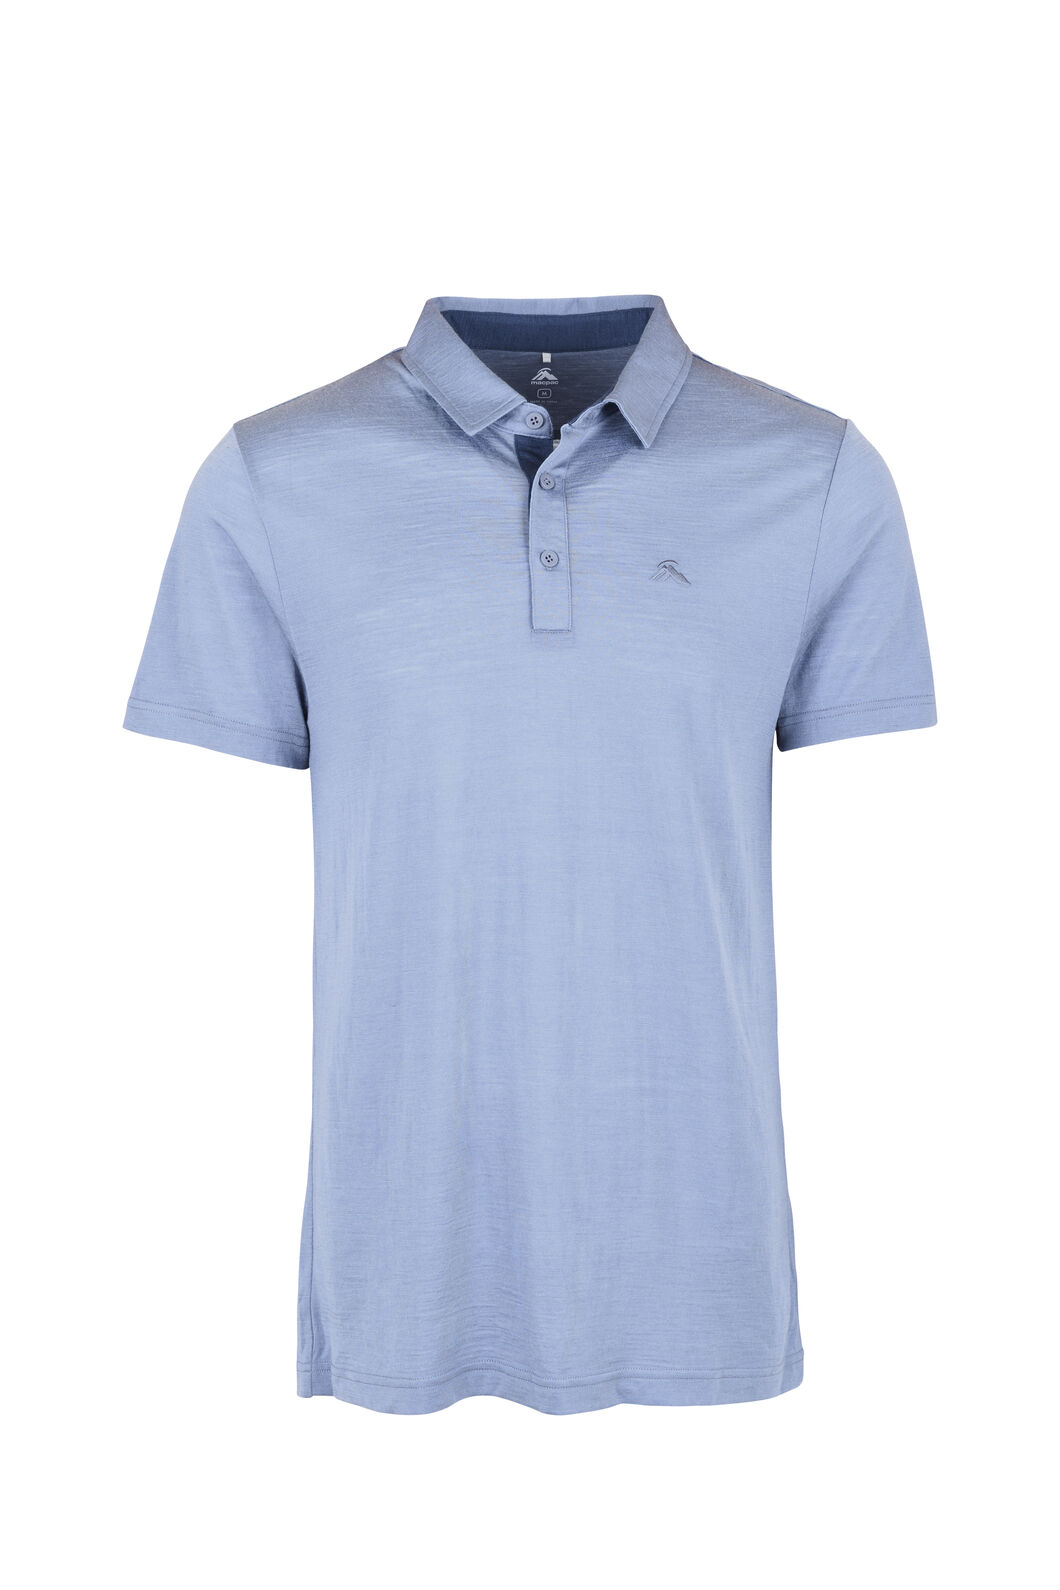 Macpac Merino Blend Polo — Men's, Flint Stone, hi-res